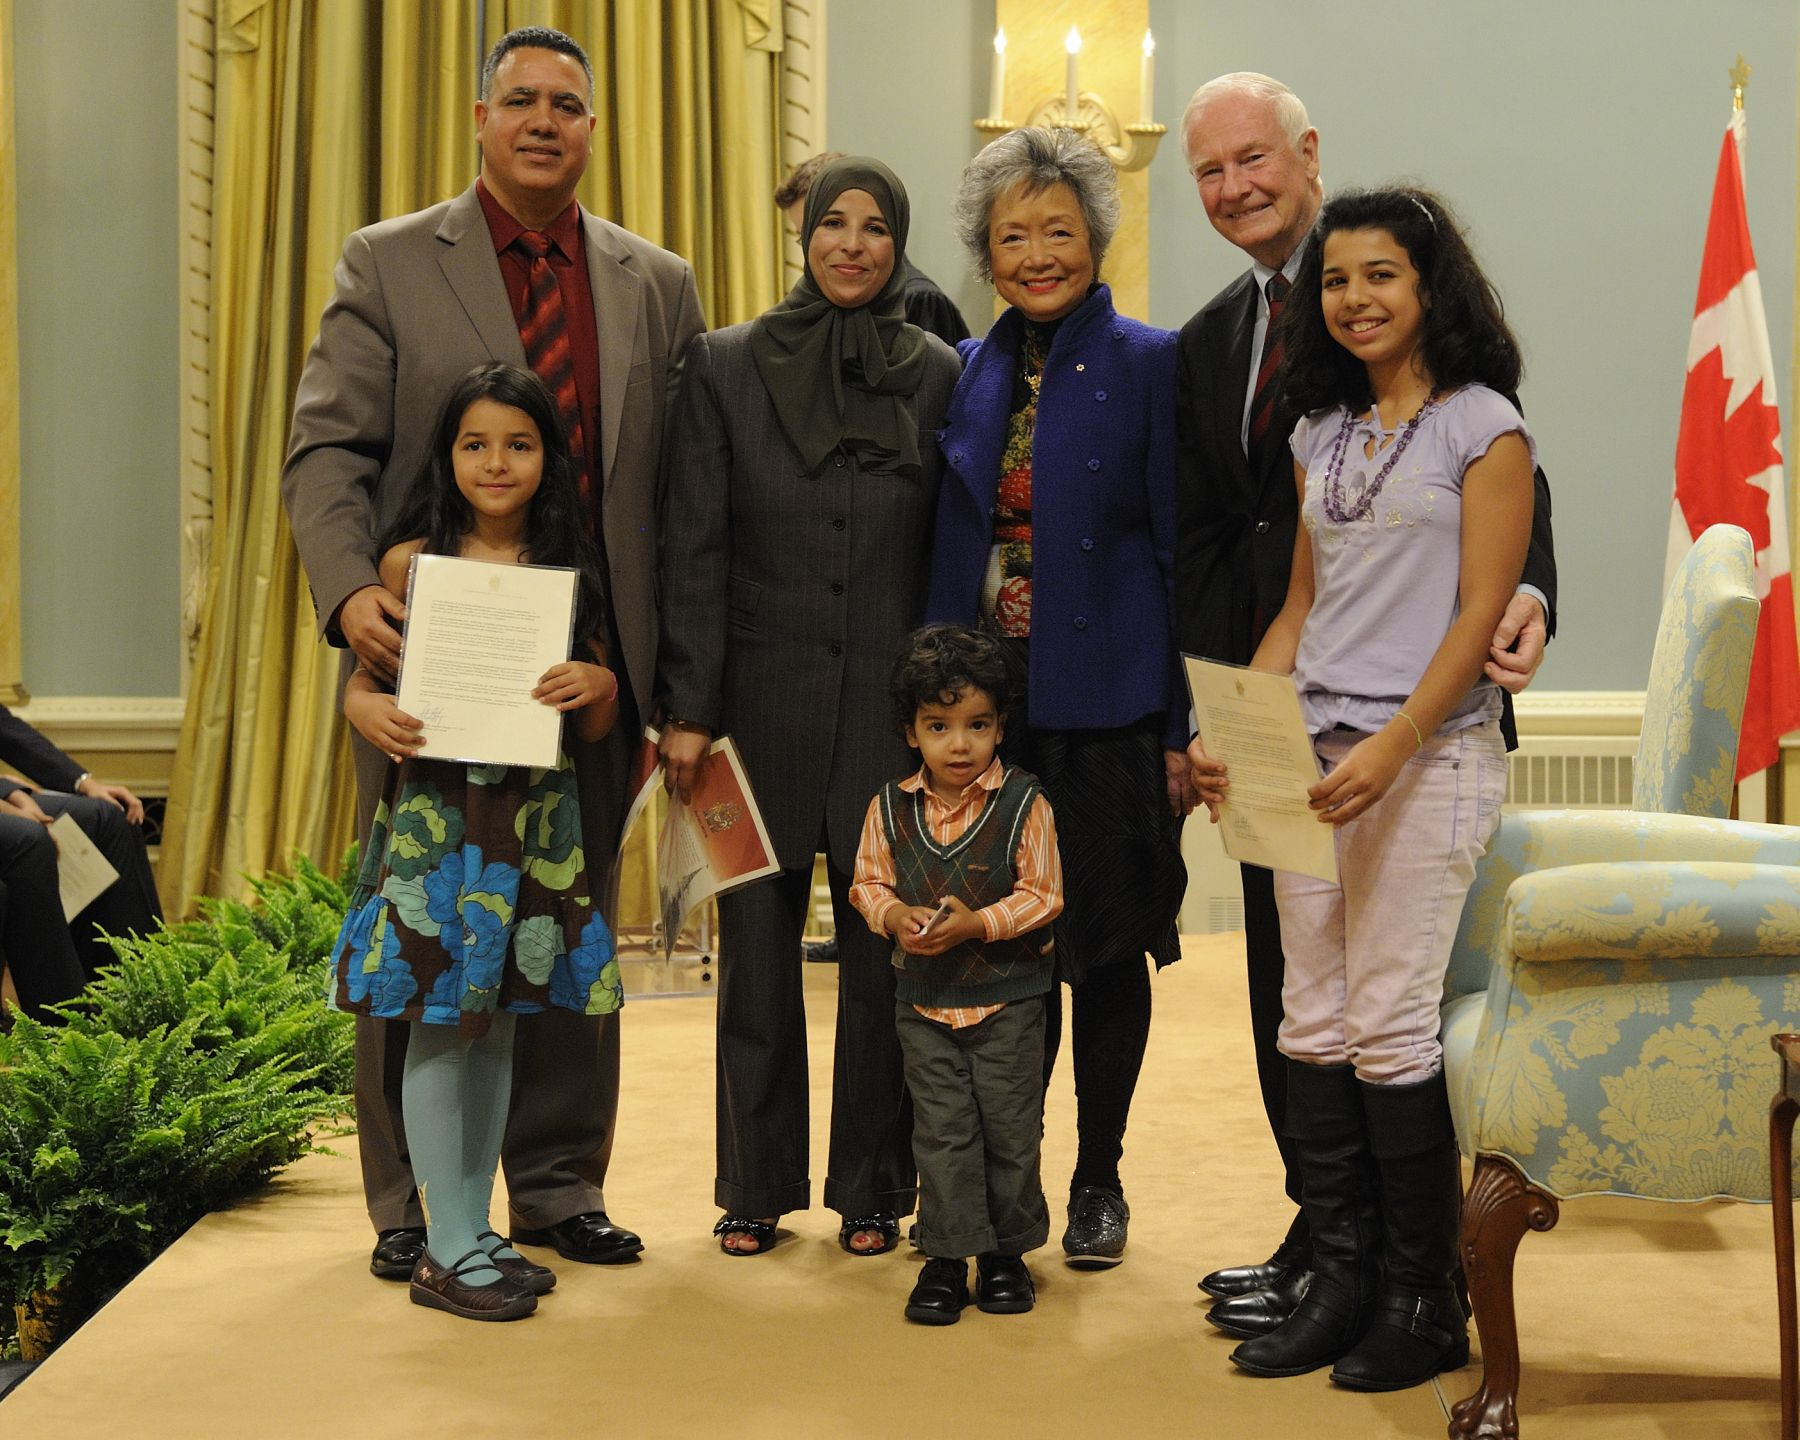 "The citizenship ceremony is a significant event in the lives of ""Canadians in waiting."" It is a goal reached after years of transition and sometimes hardship. It is a starting point to a promising future and a new way of life."